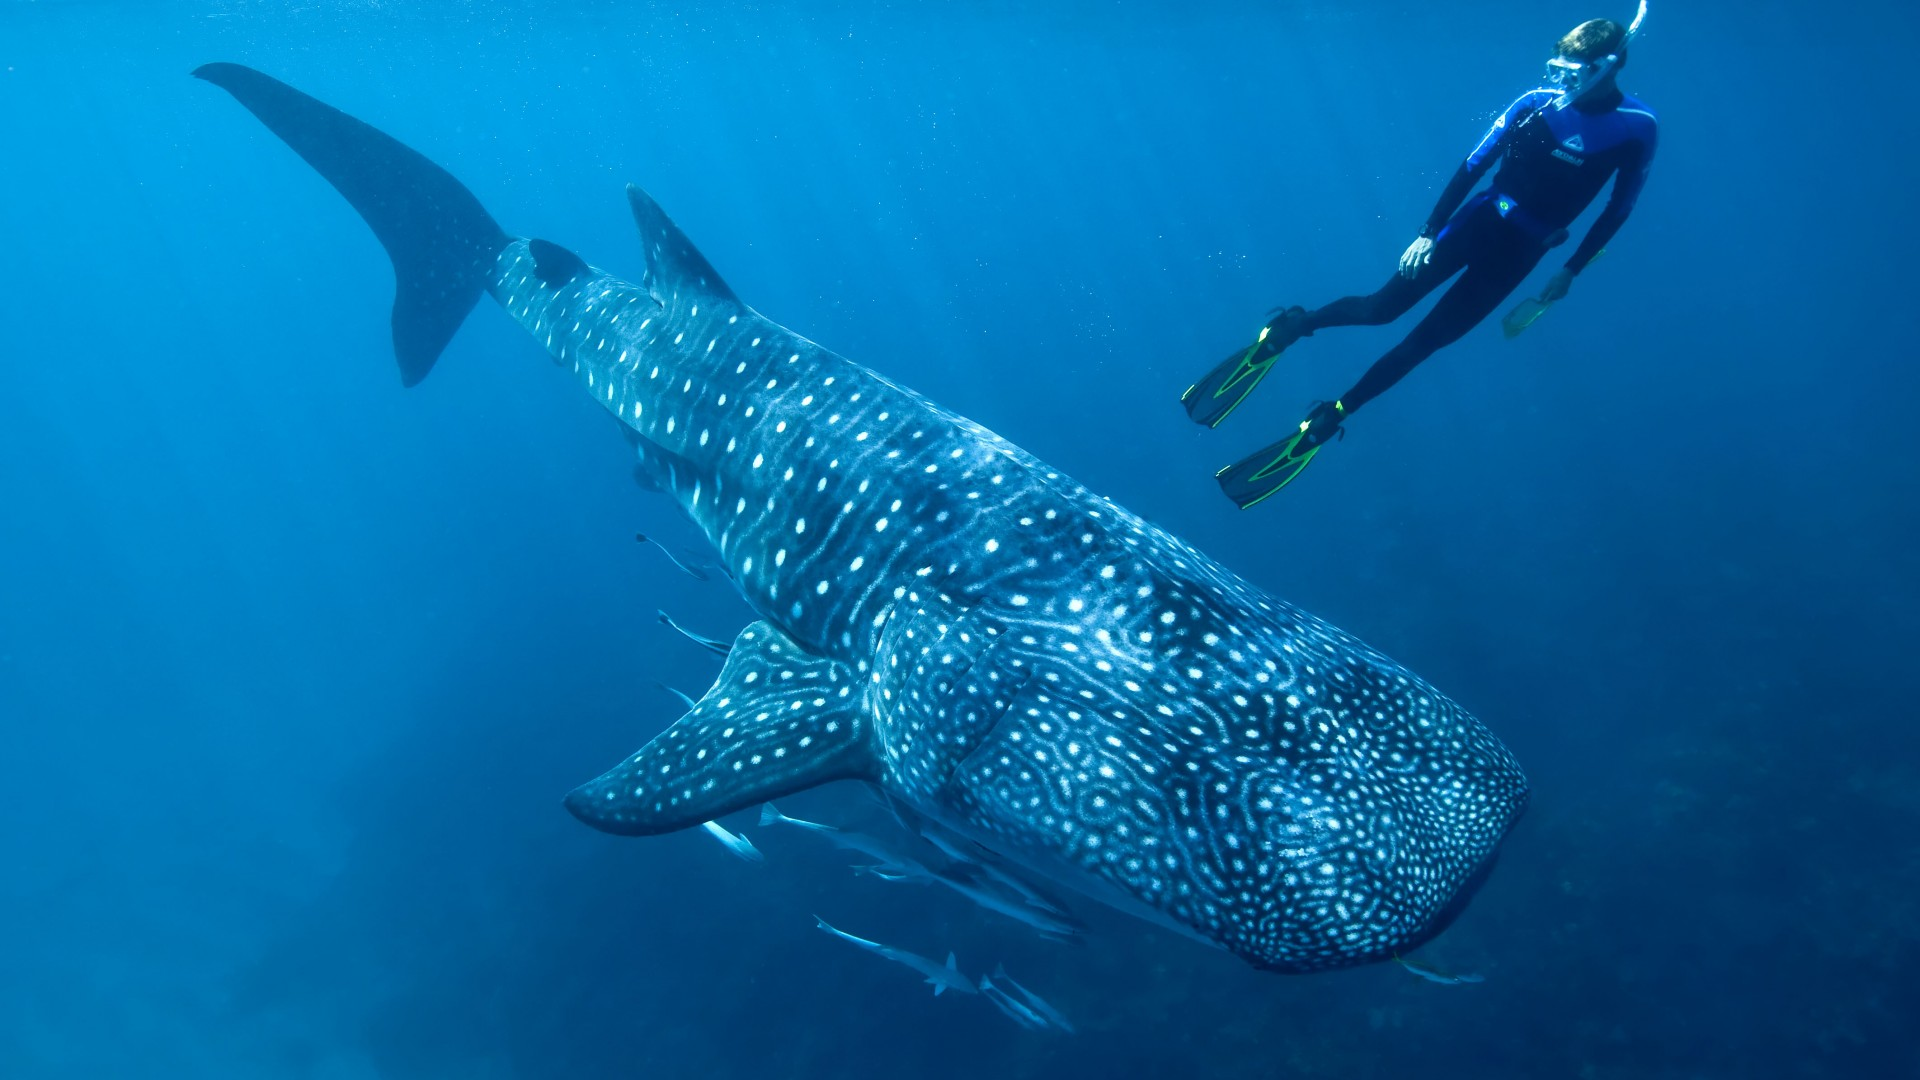 Whale shark, shark, atlantic, indian, pacific, ocean, water, underwater, blue, diving, tourism, fish, World's best diving sites (horizontal)